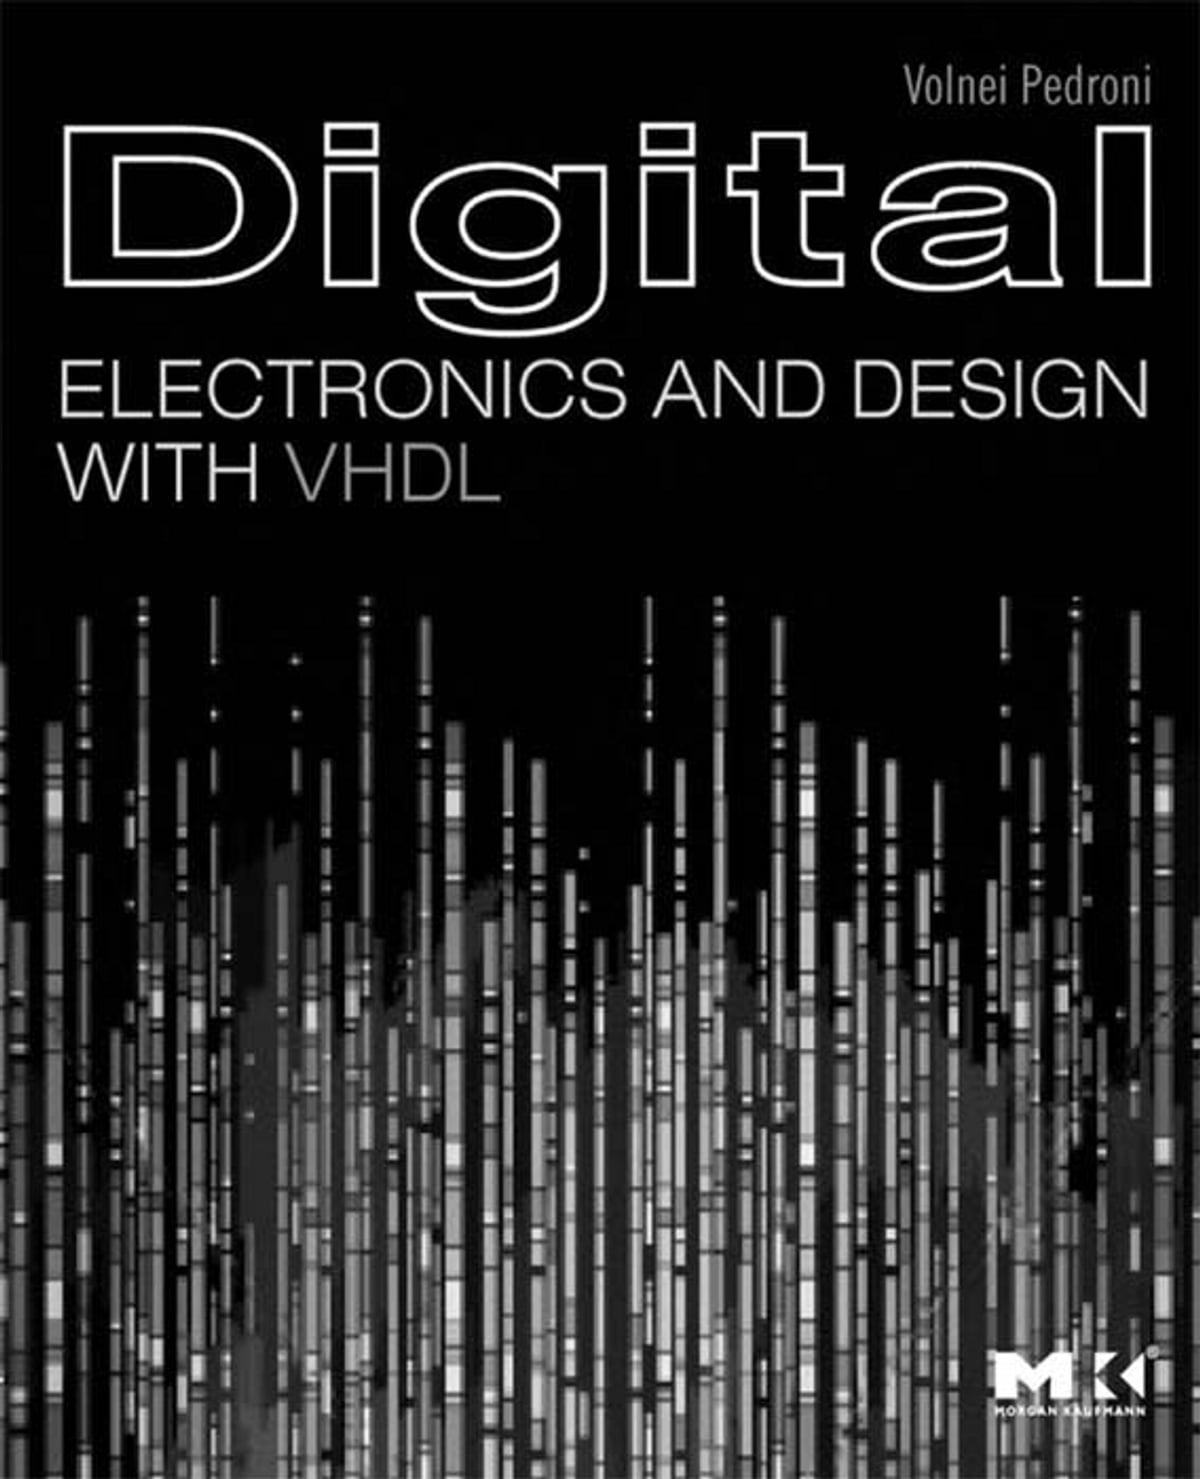 Digital Electronics And Design With Vhdl Ebook By Volnei A Pedroni Electronic Circuit Mcqs 9780080557557 Rakuten Kobo